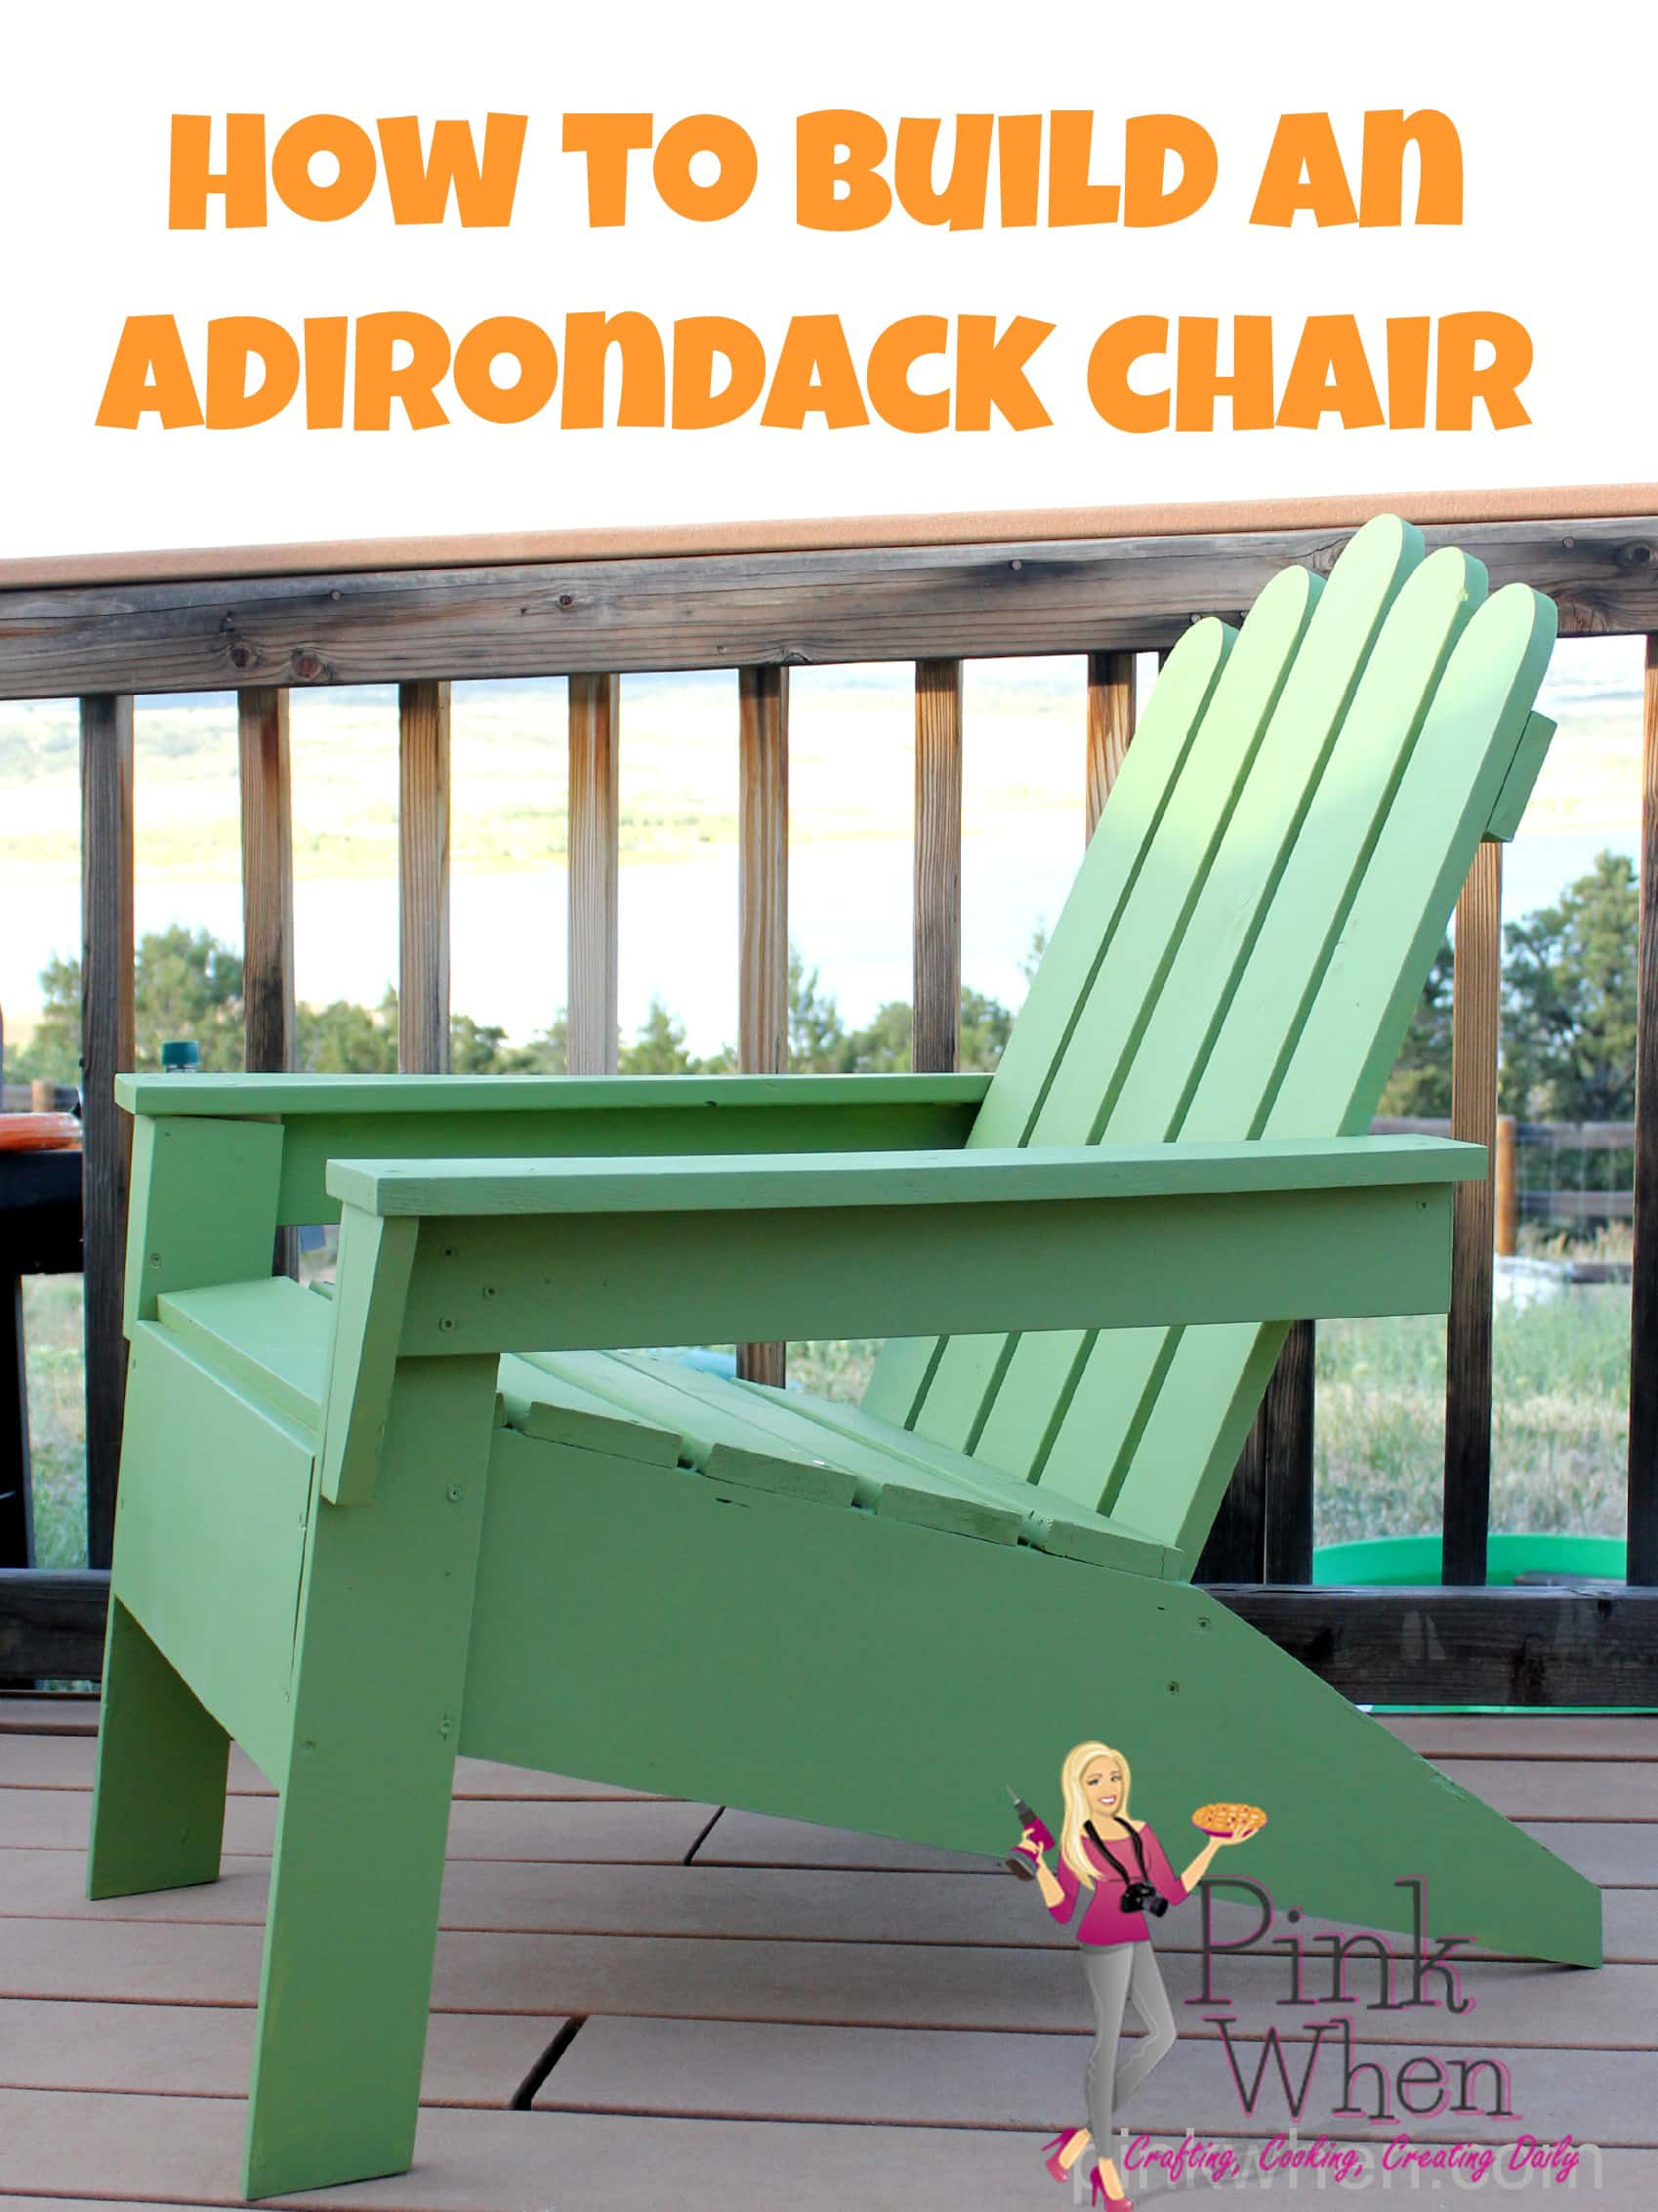 How to Build Your Own Adirondack Chair via PinkWhen.com